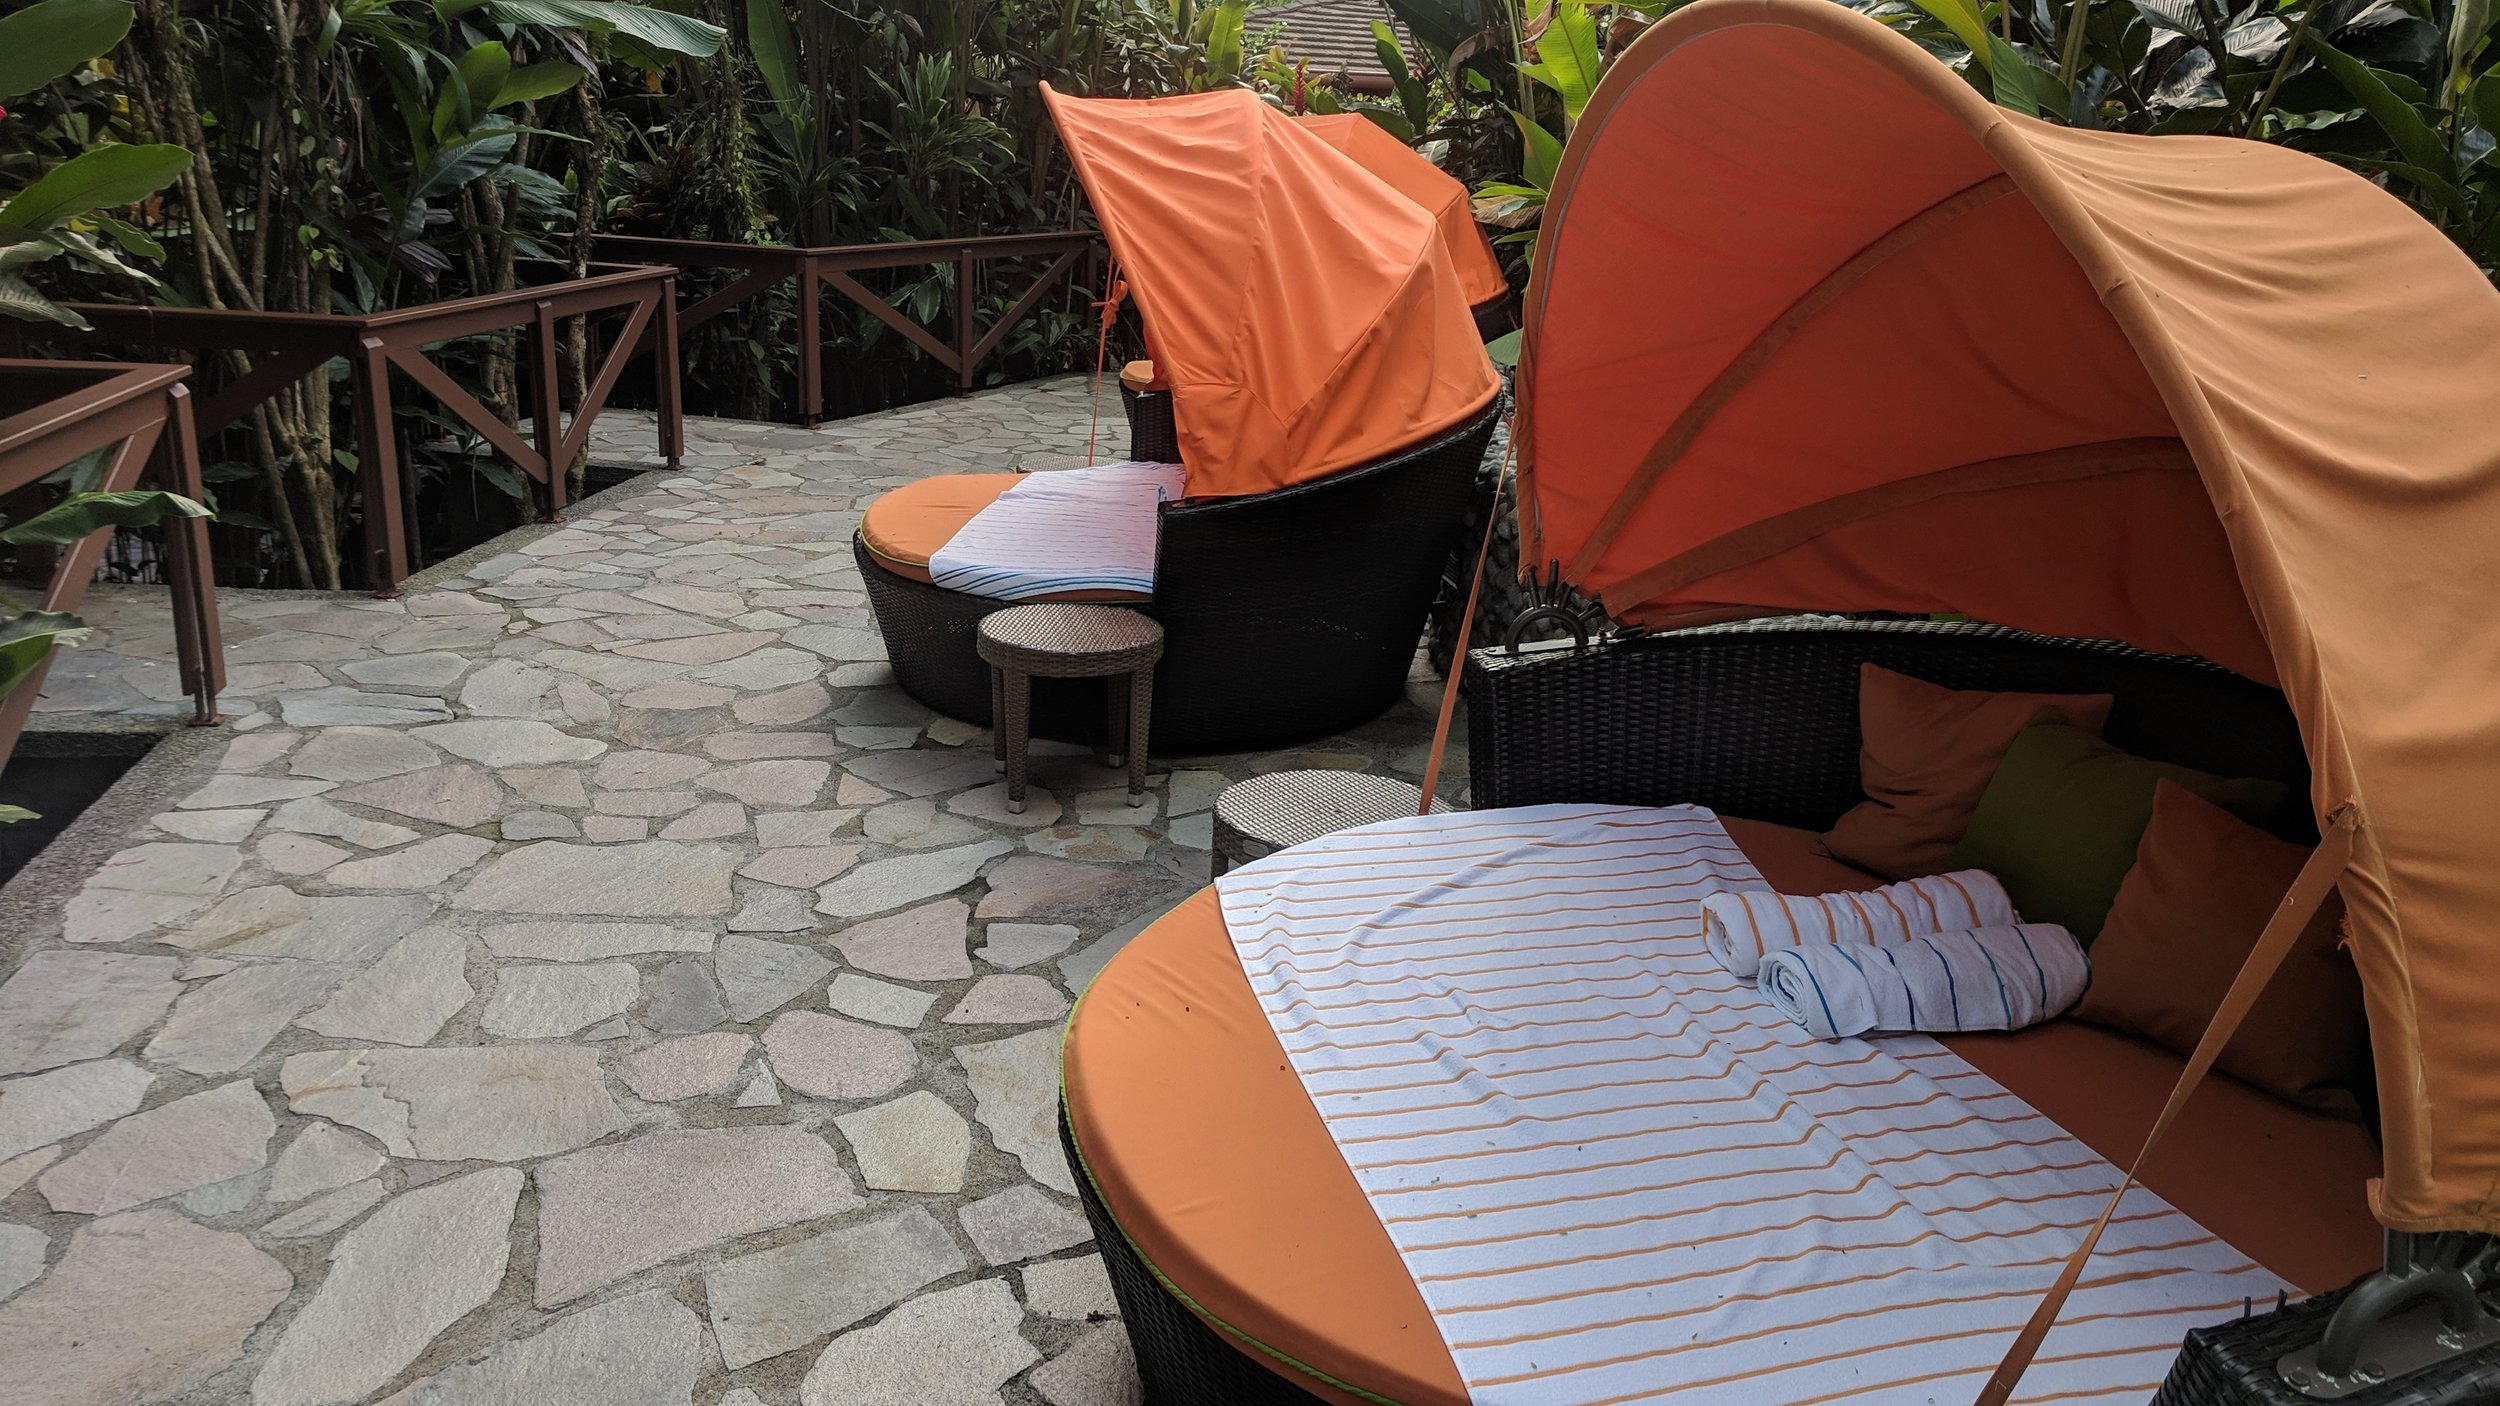 Plenty of nice spots to relax near the hot tubs.